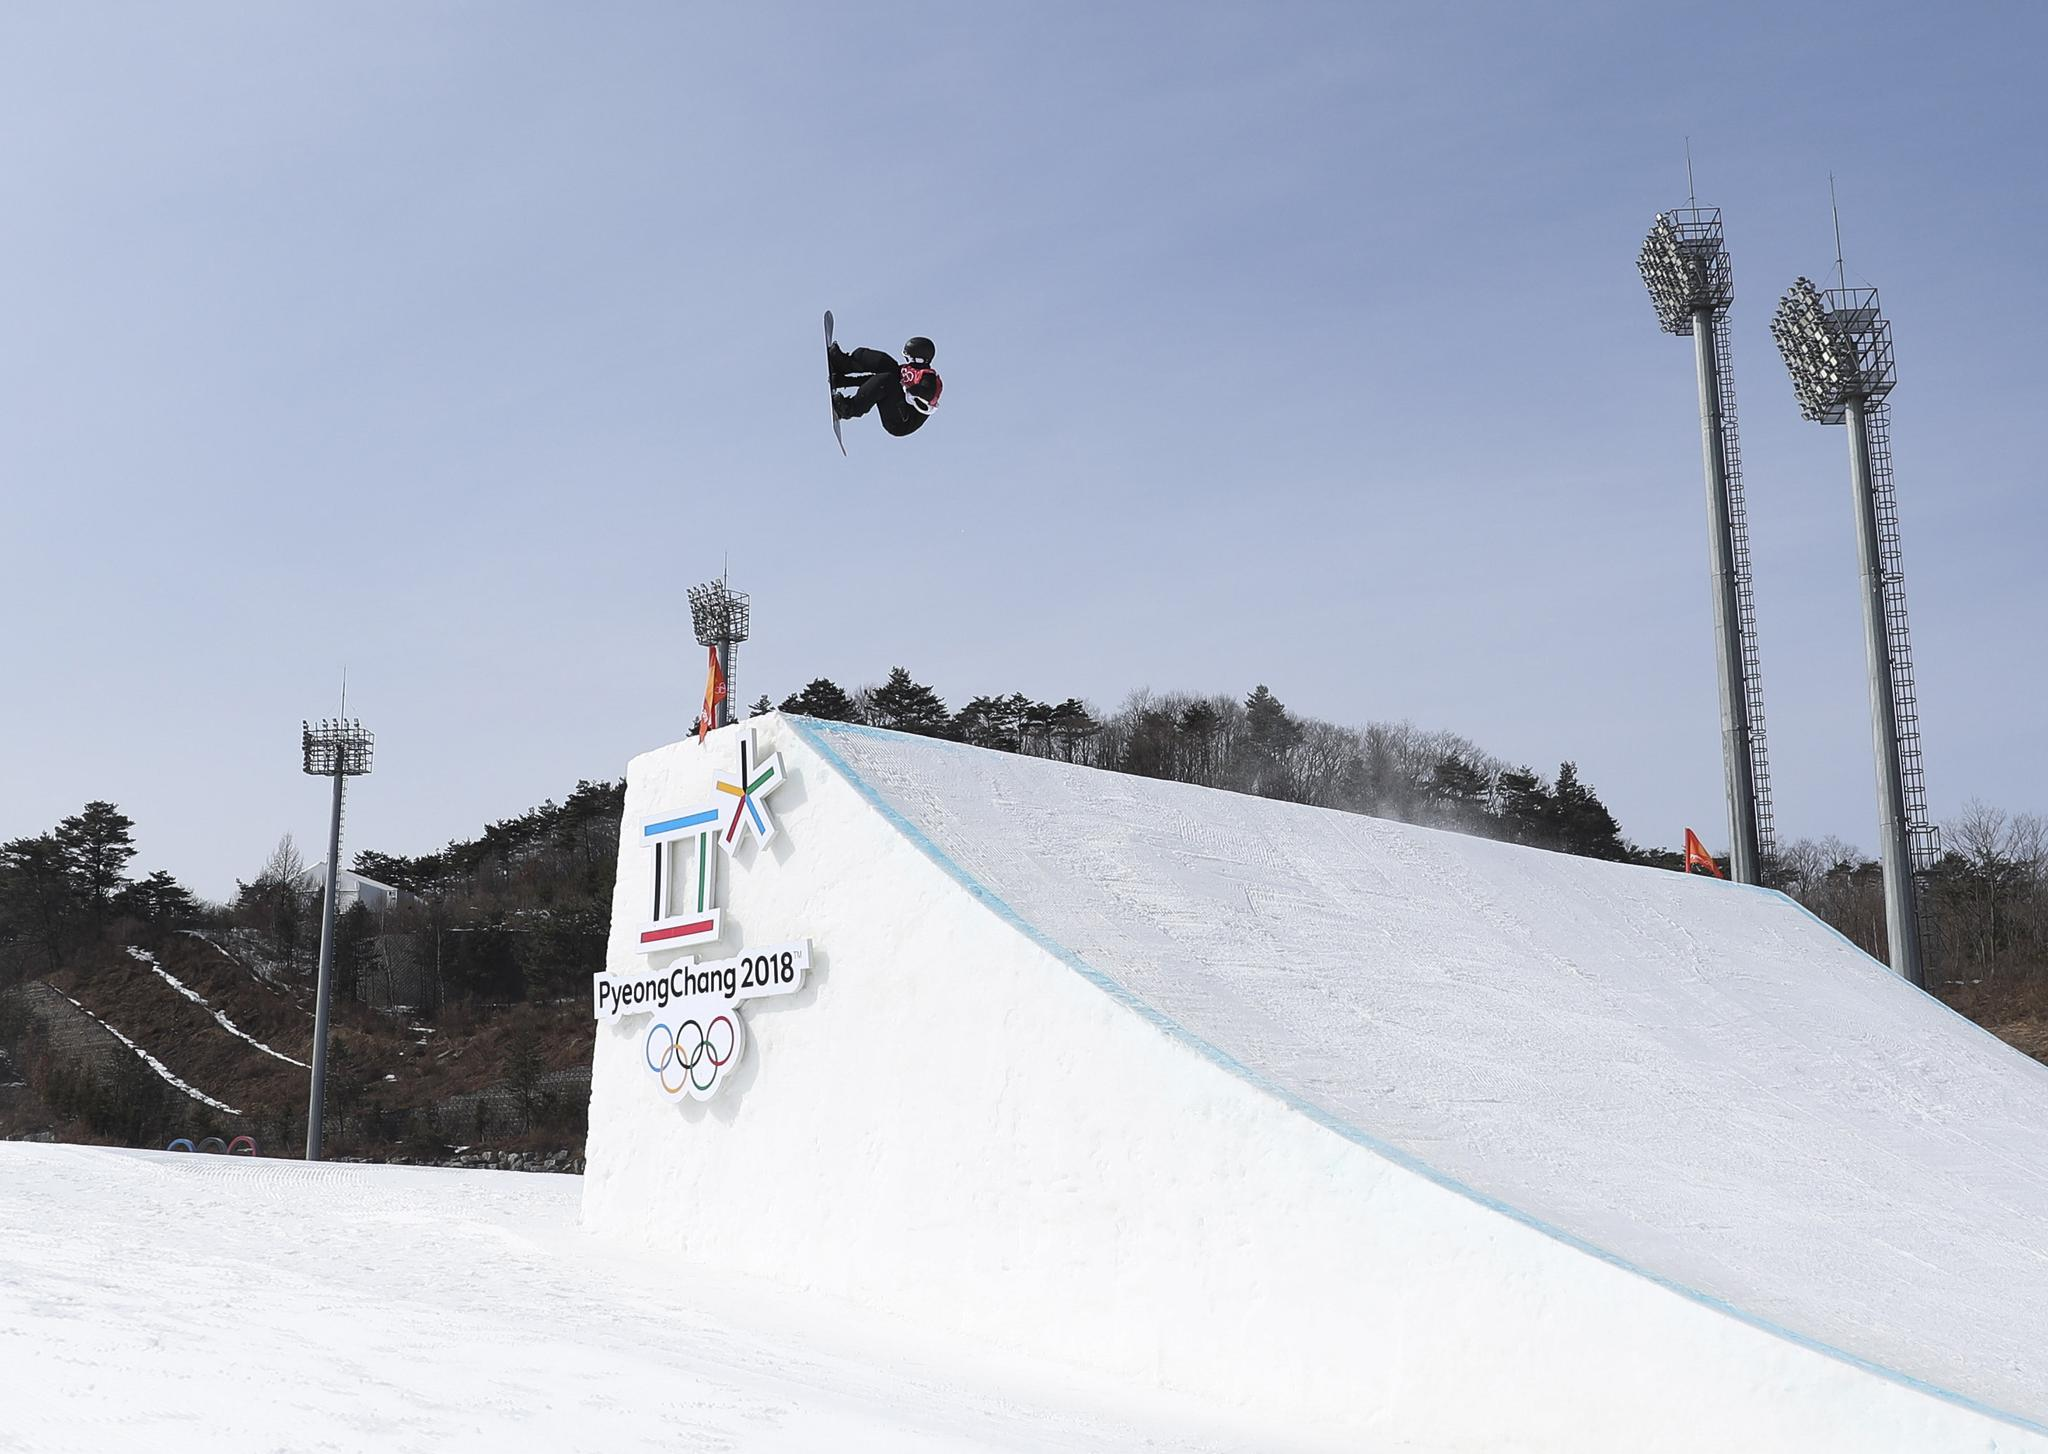 6ab13b81b789 Olympics  New Big Air Snowboarding Takes Extreme Sports To The Extreme —  And The Athletes Are Scared